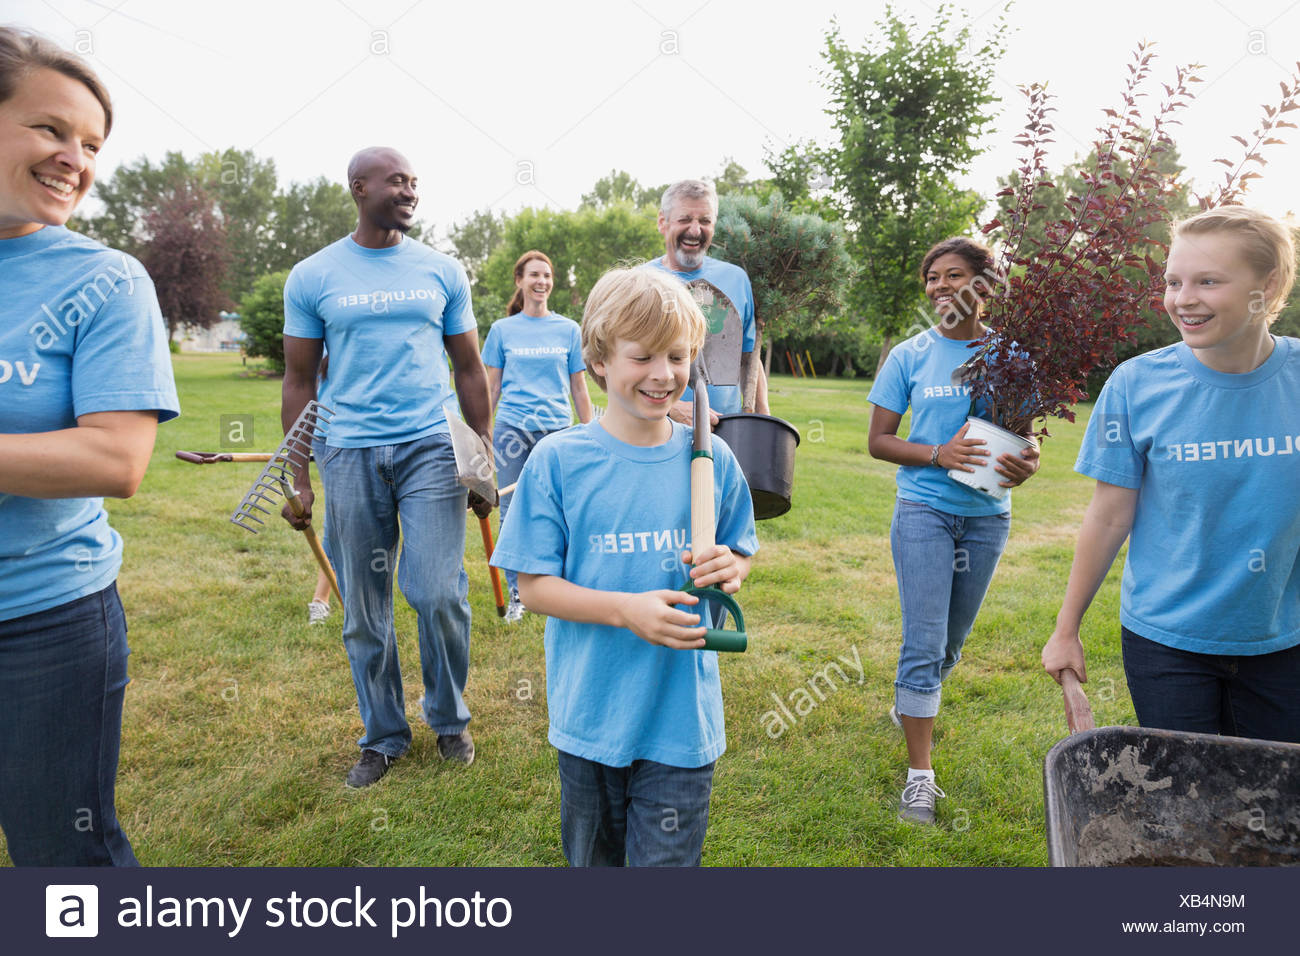 Volunteers carrying potted plant and tools - Stock Image